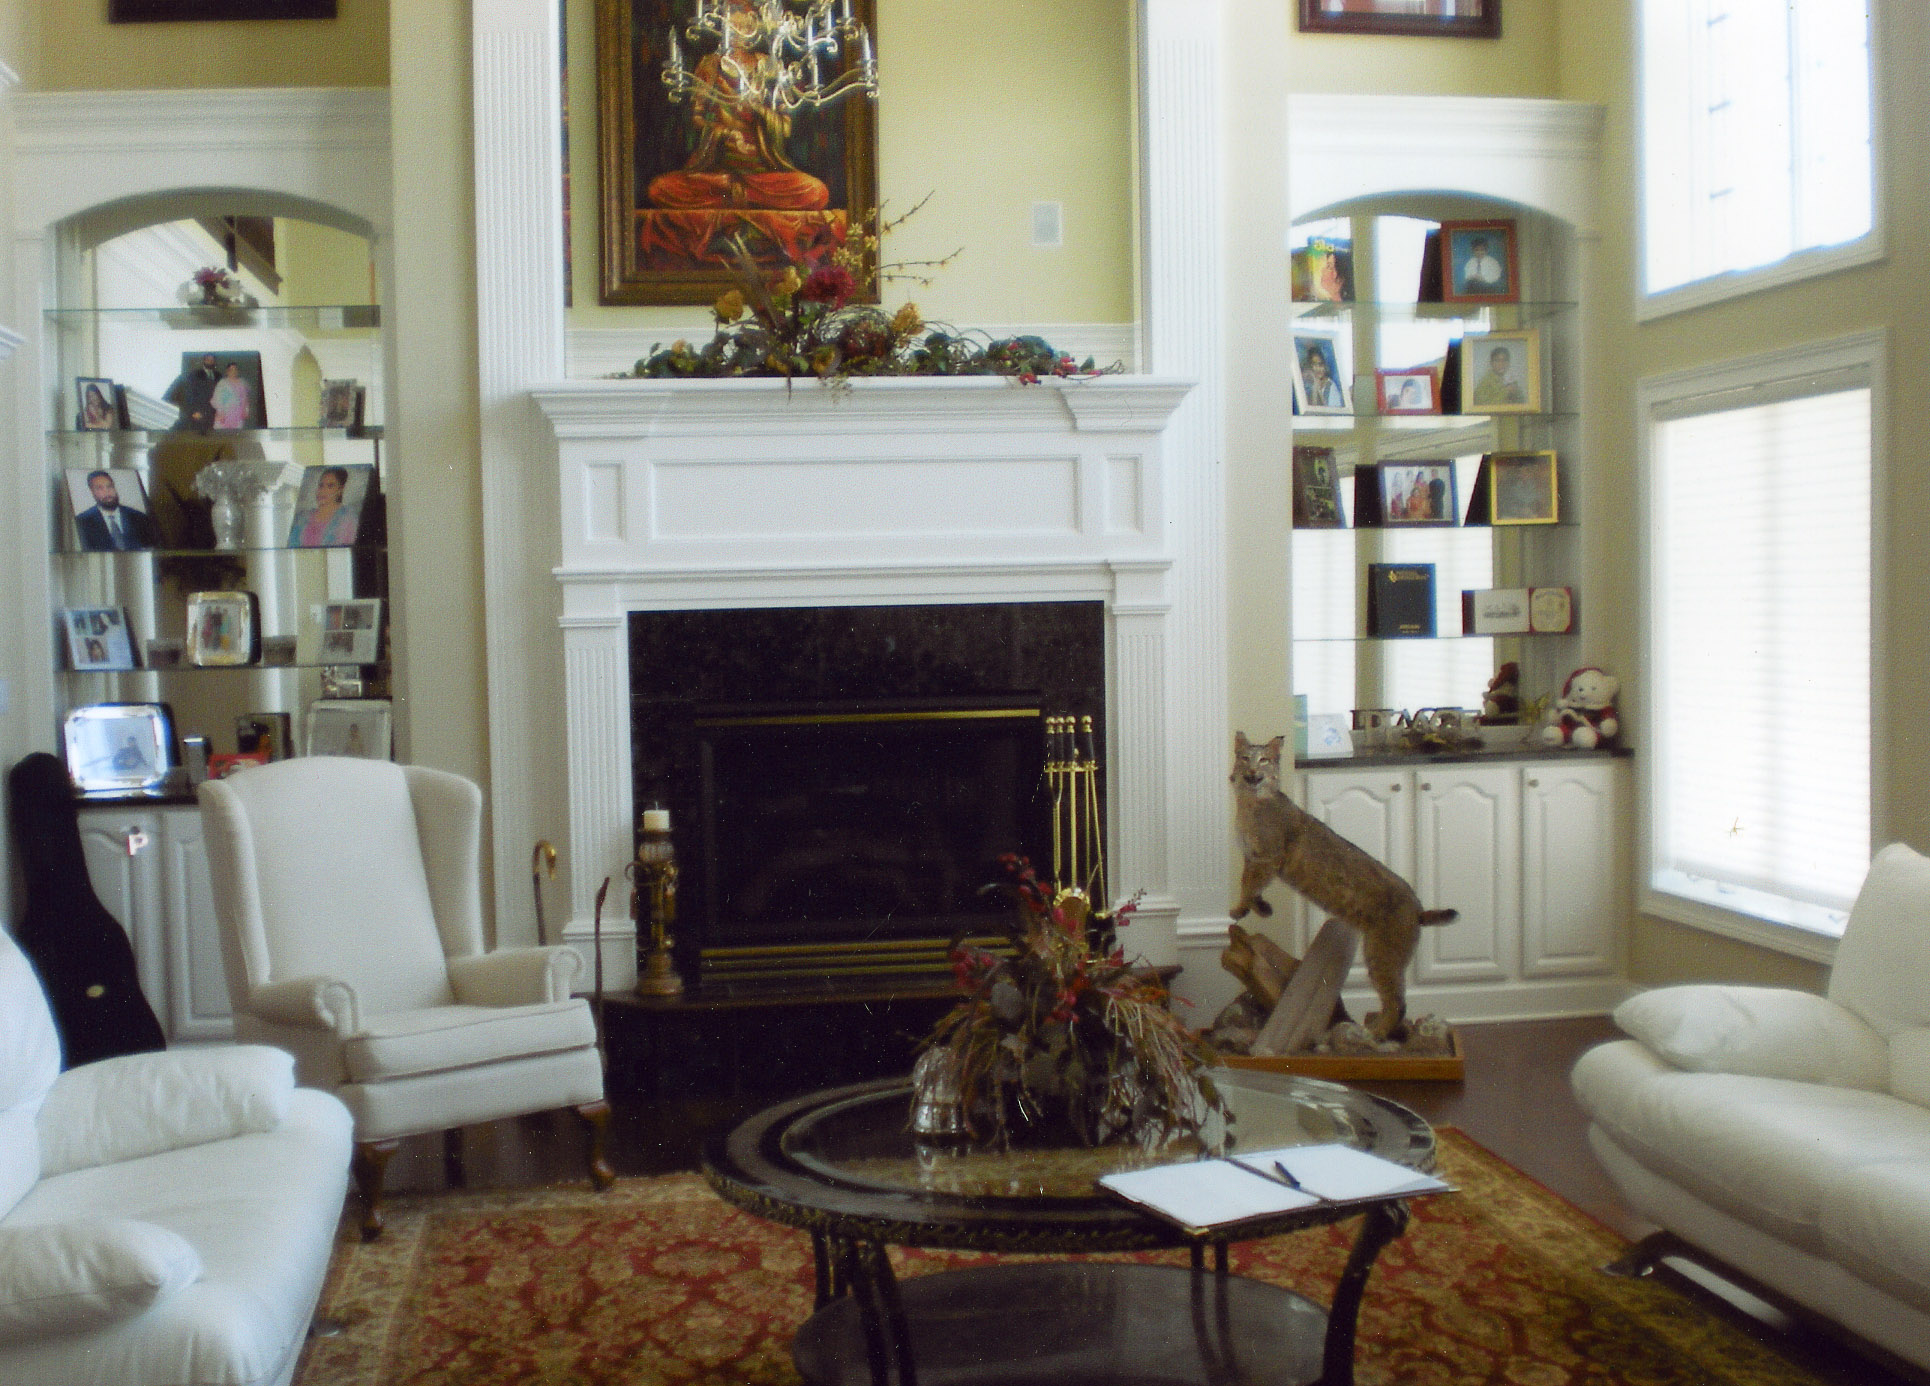 The ABC's Of Decorating: J Is For… Just Have Fun